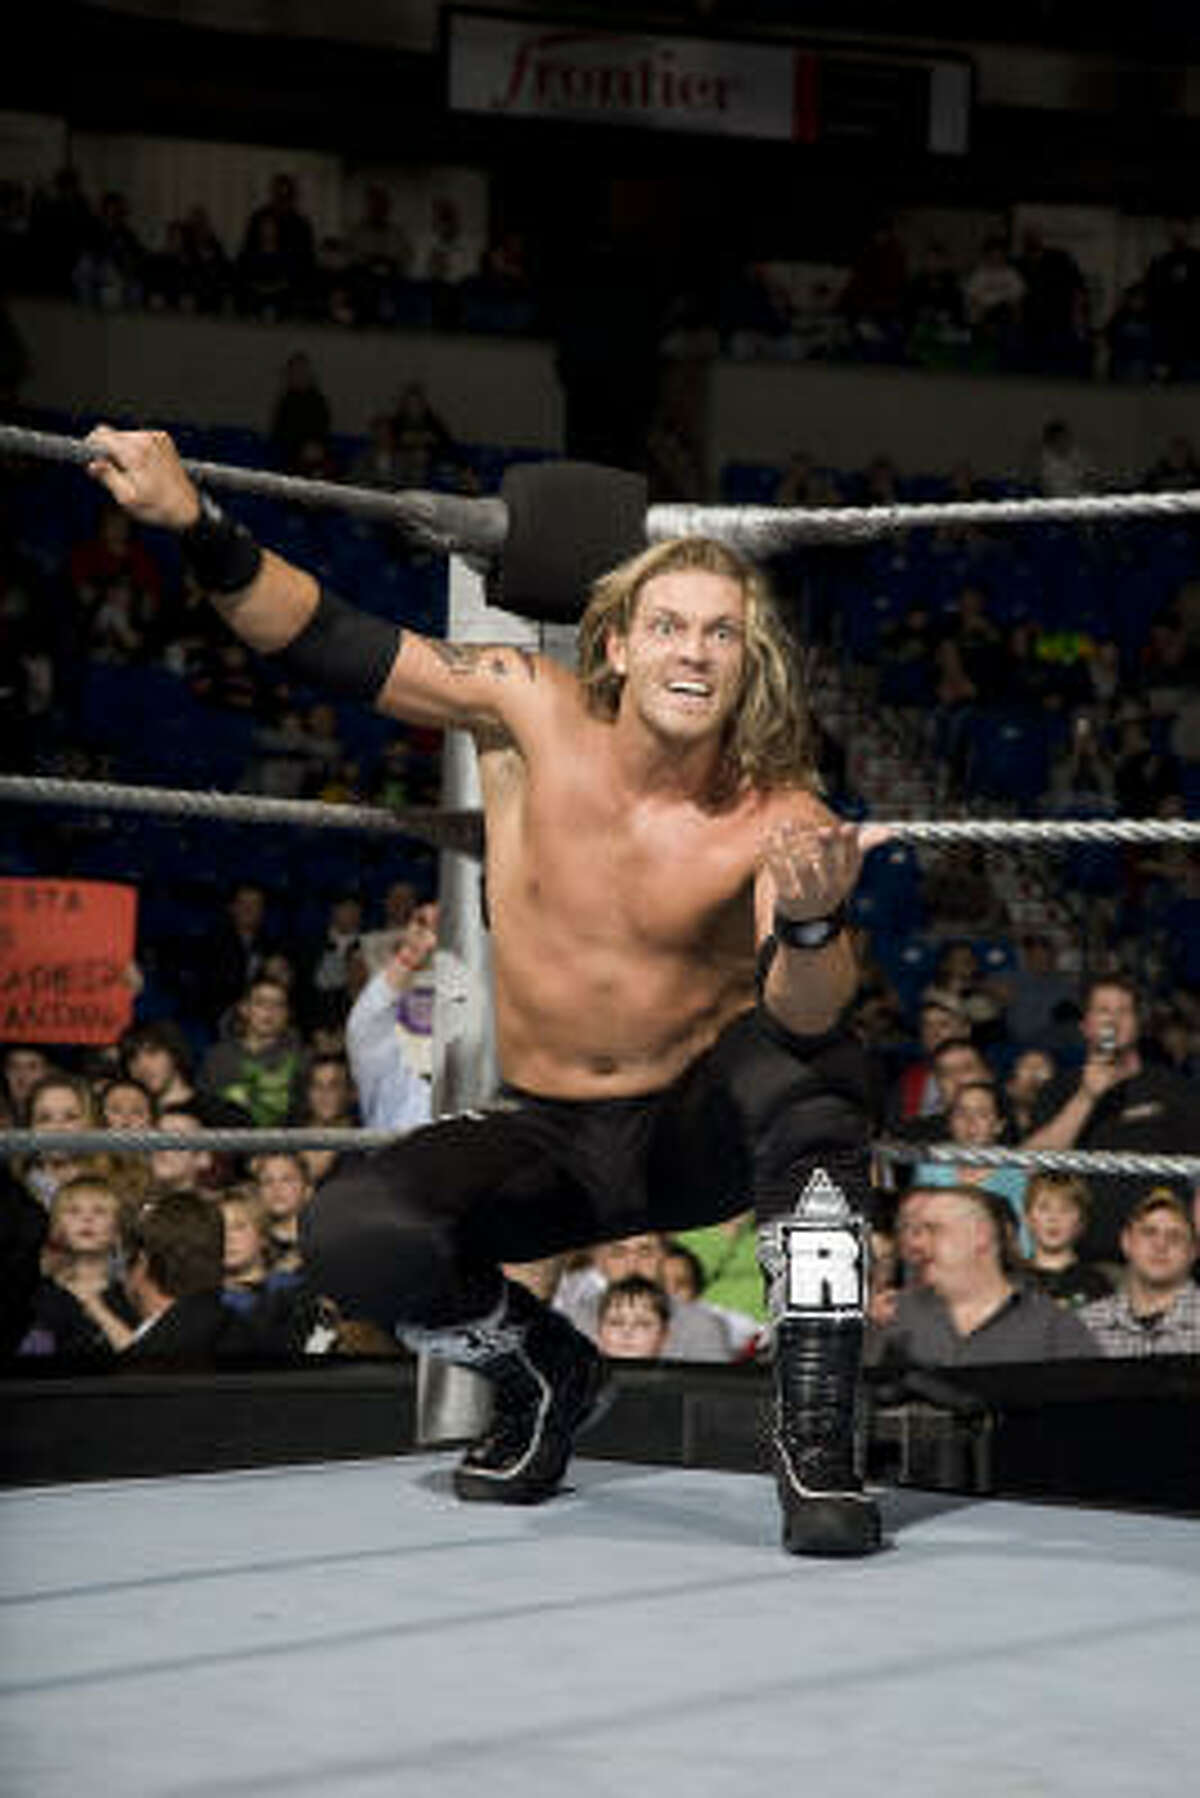 Edge, the current World Champion, will face John Cena and the Big Show in a title match at Wrestlemania.